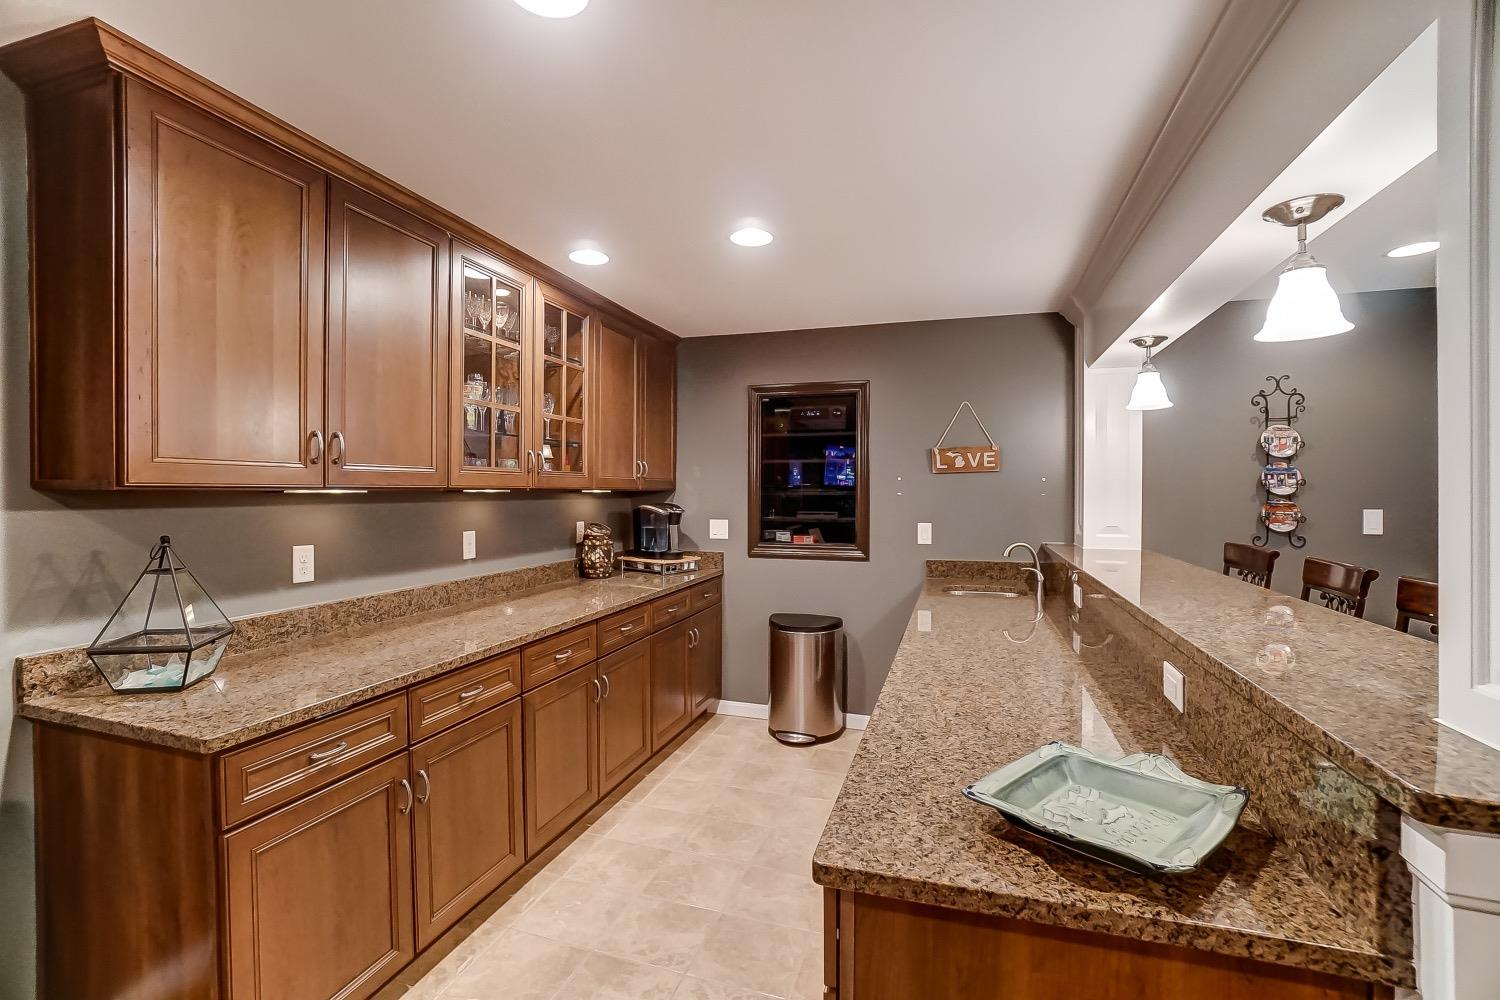 Lots of cabinets, granite countertops and glass-front shelves for electronic components in wall.